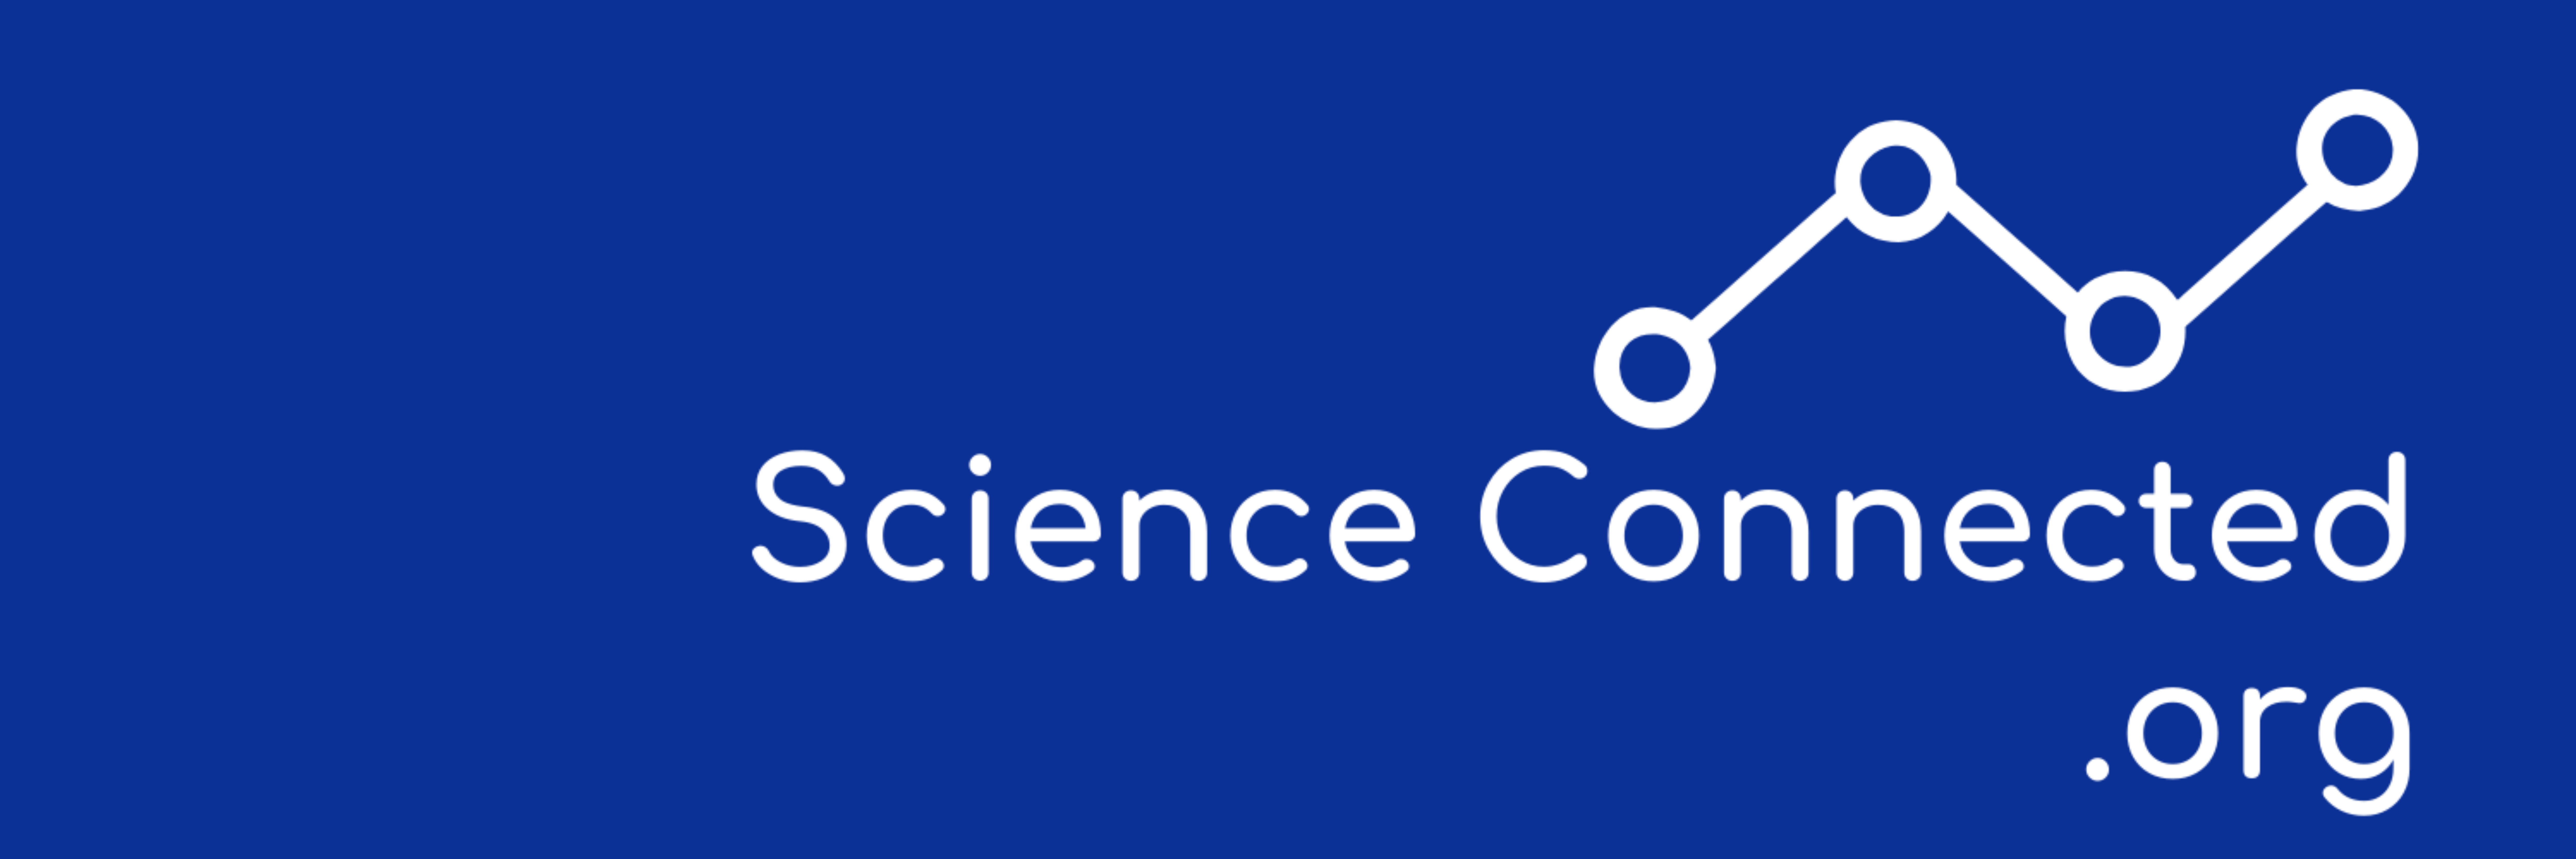 Science Connected.Org